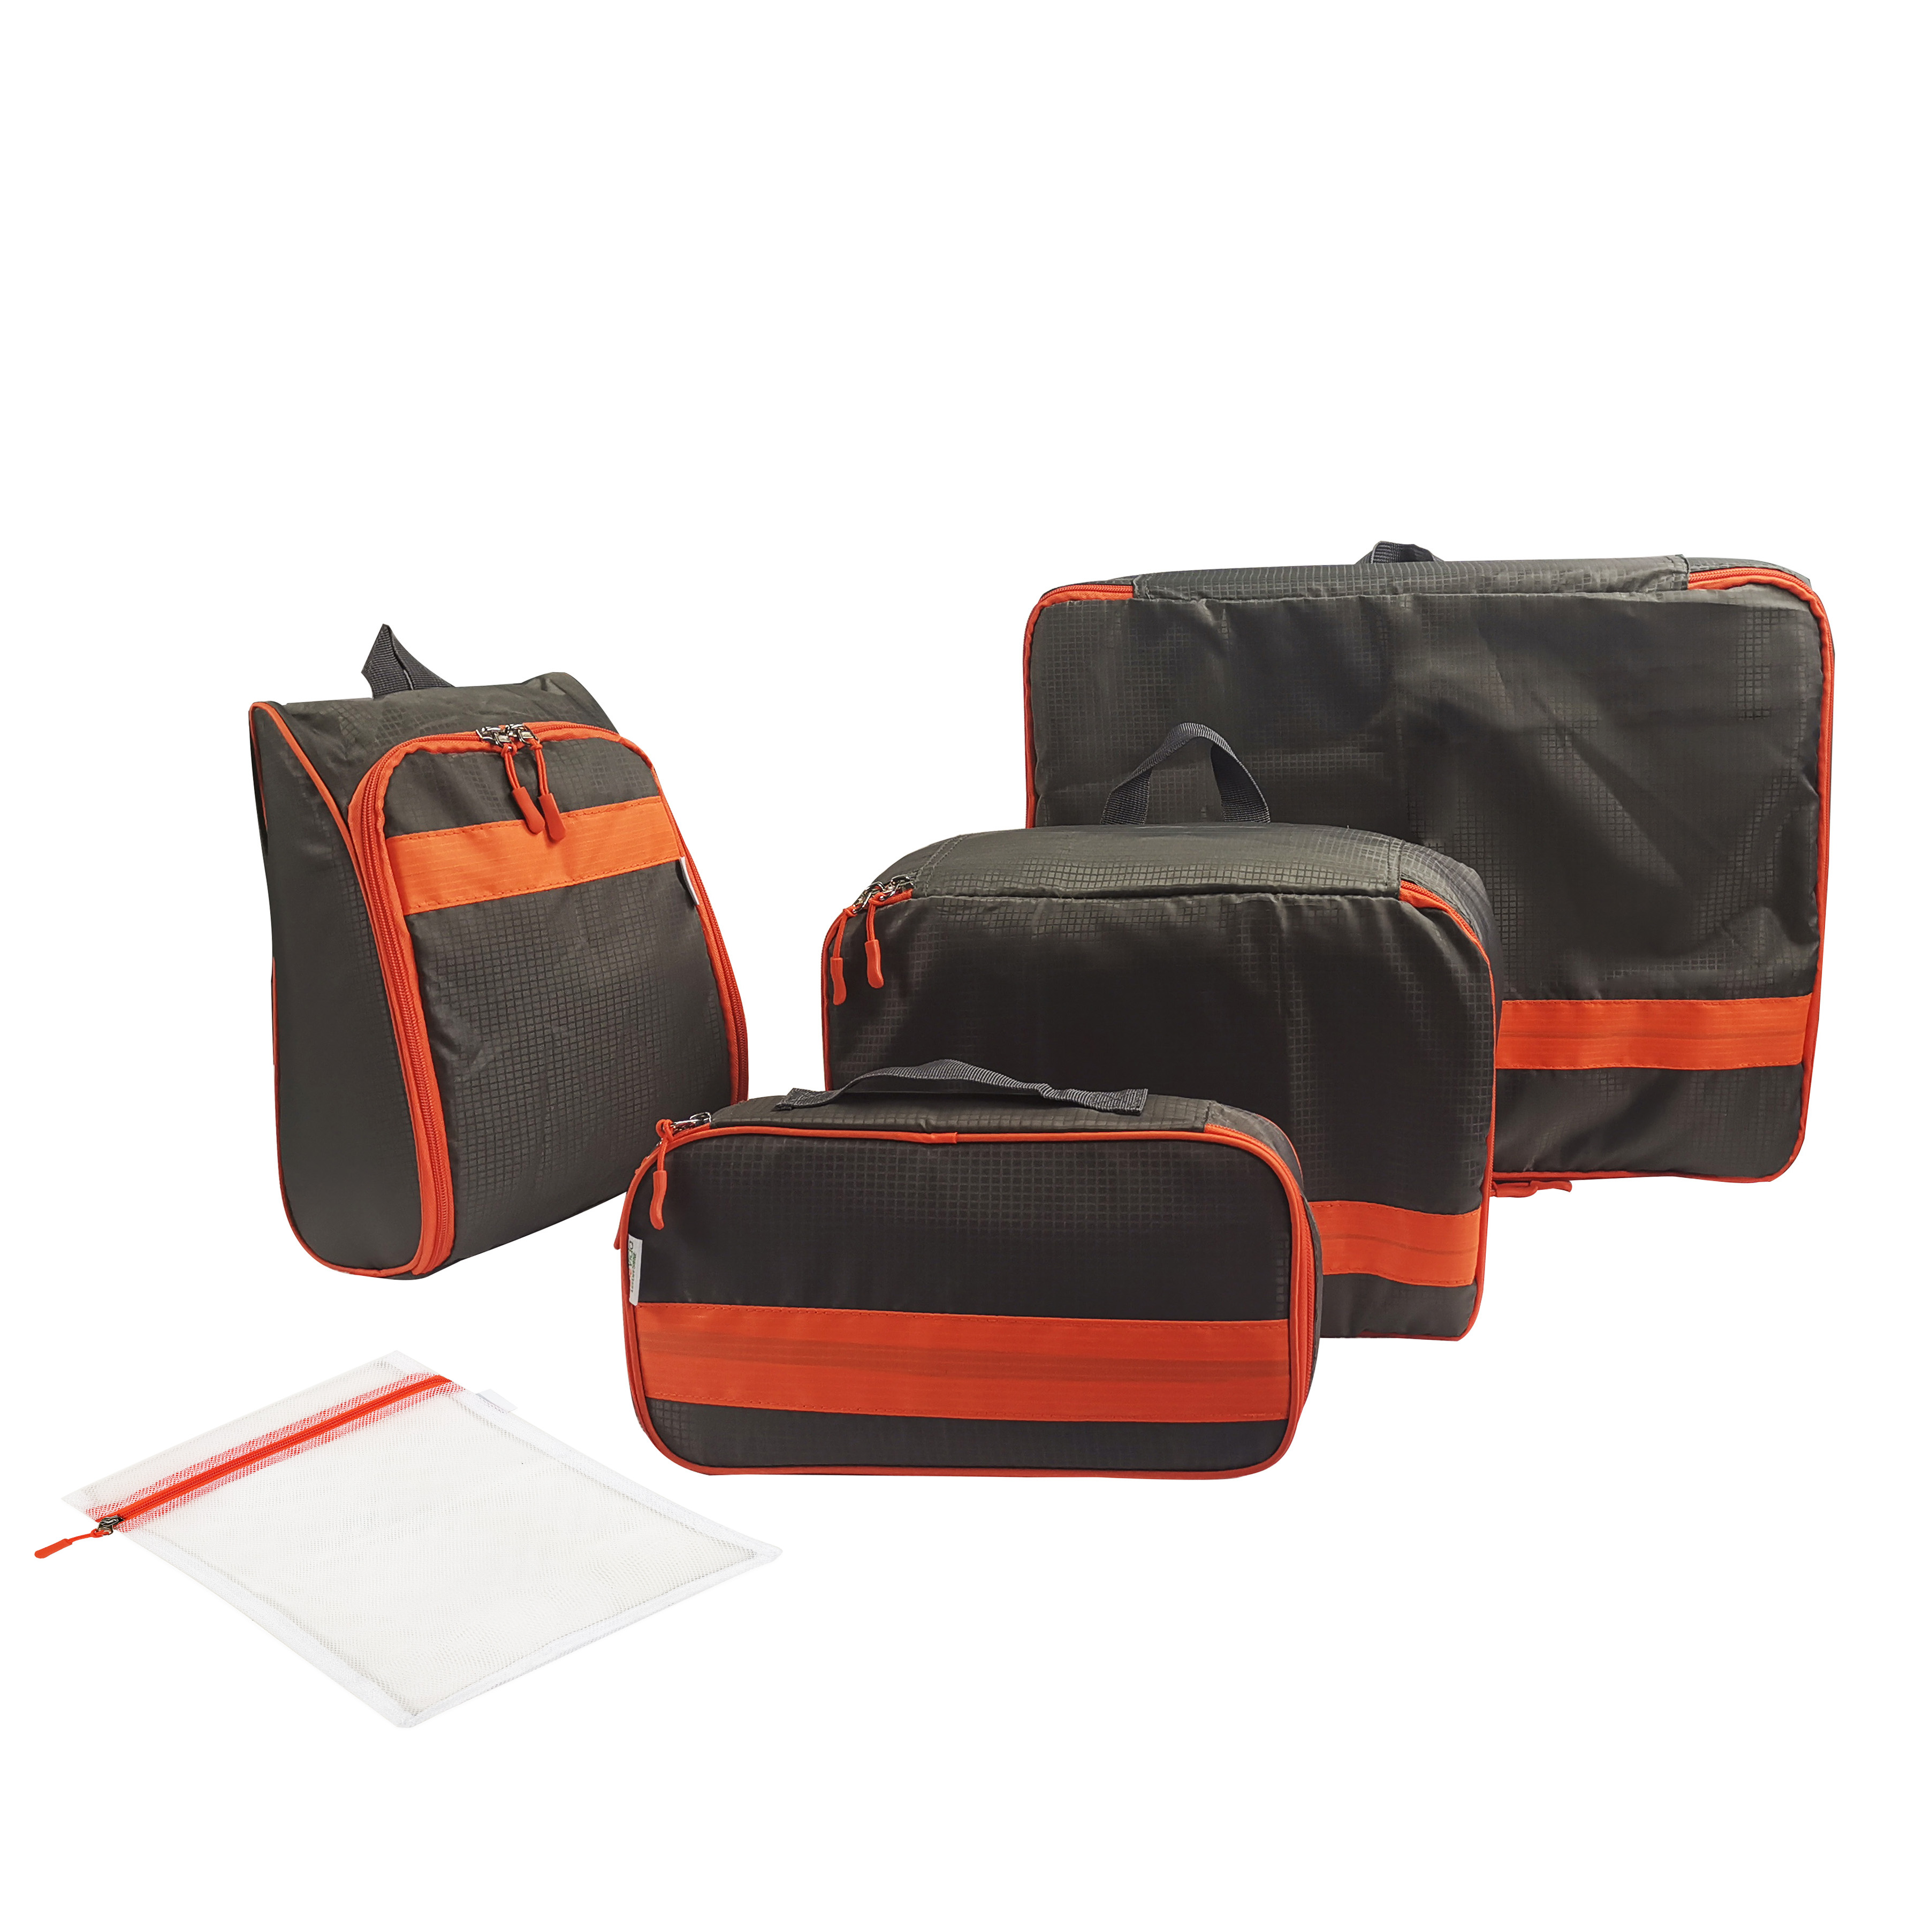 6 set packing cubes packing luggage bag travel organizer packing cubes  3 buyers